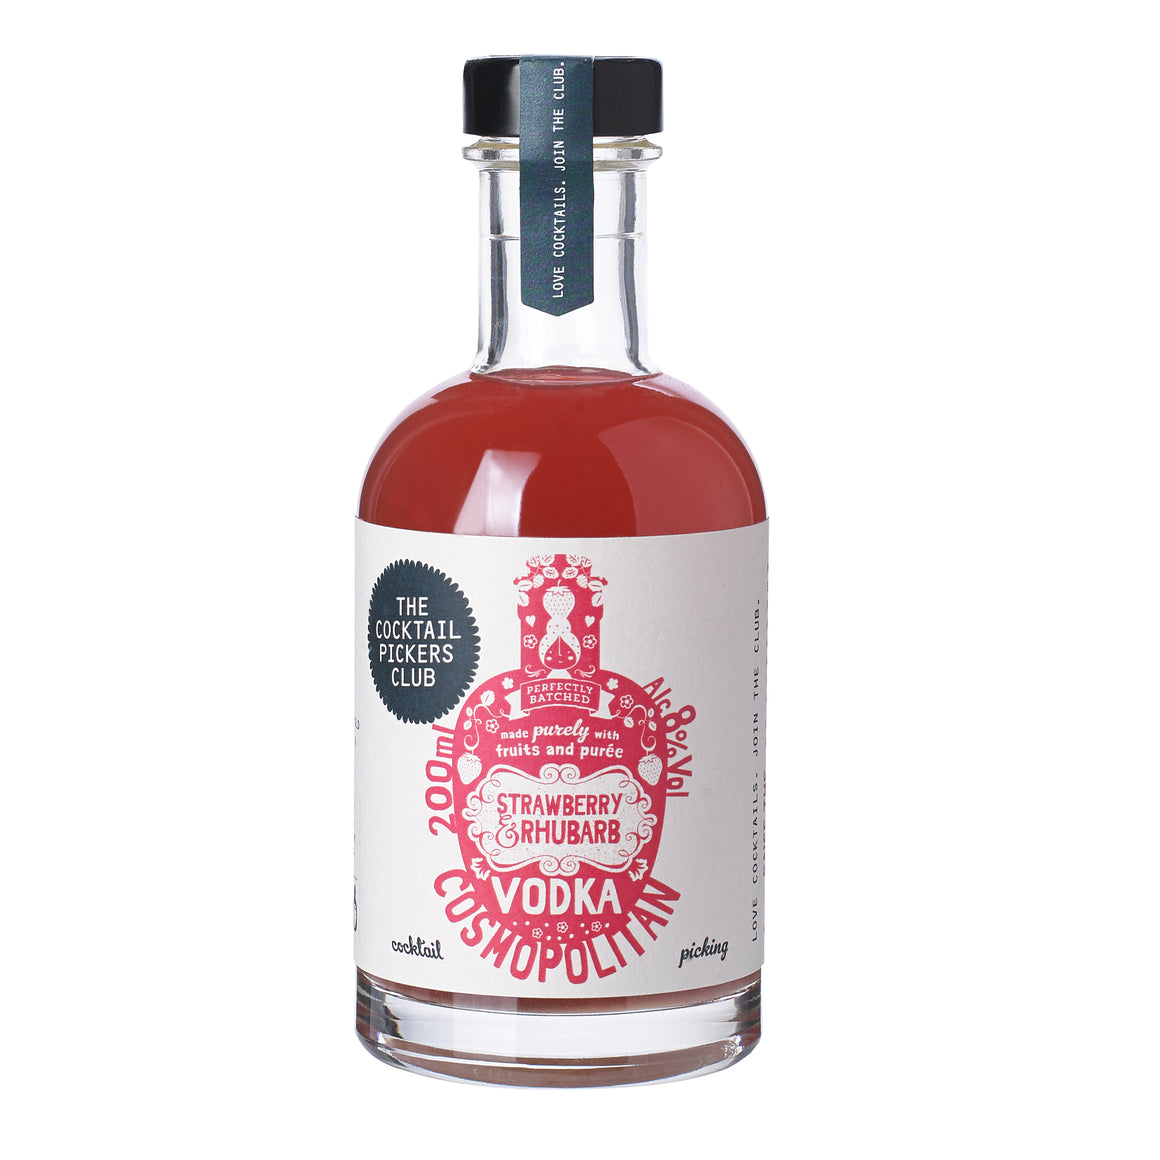 'Mini Pickers' Strawberry and Rhubarb Cosmopolitan 2x 200ml